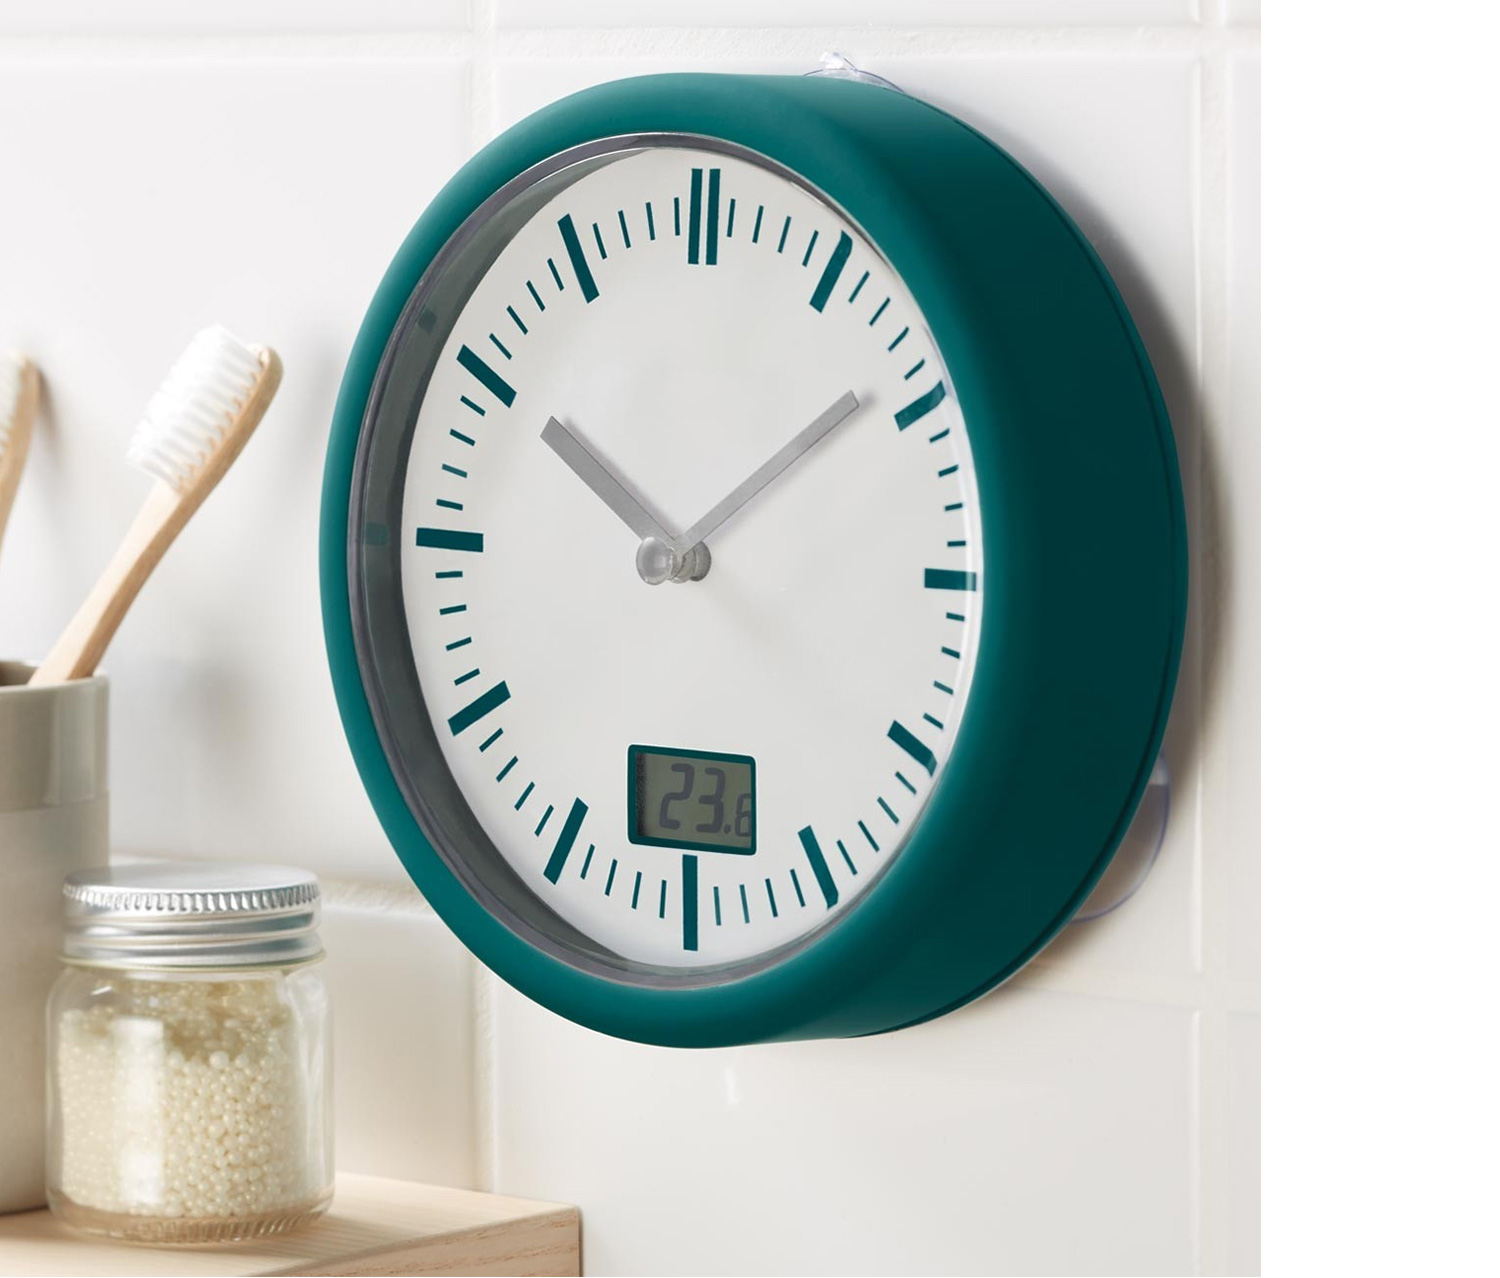 Bathroom Clock with Thermometer, Teal